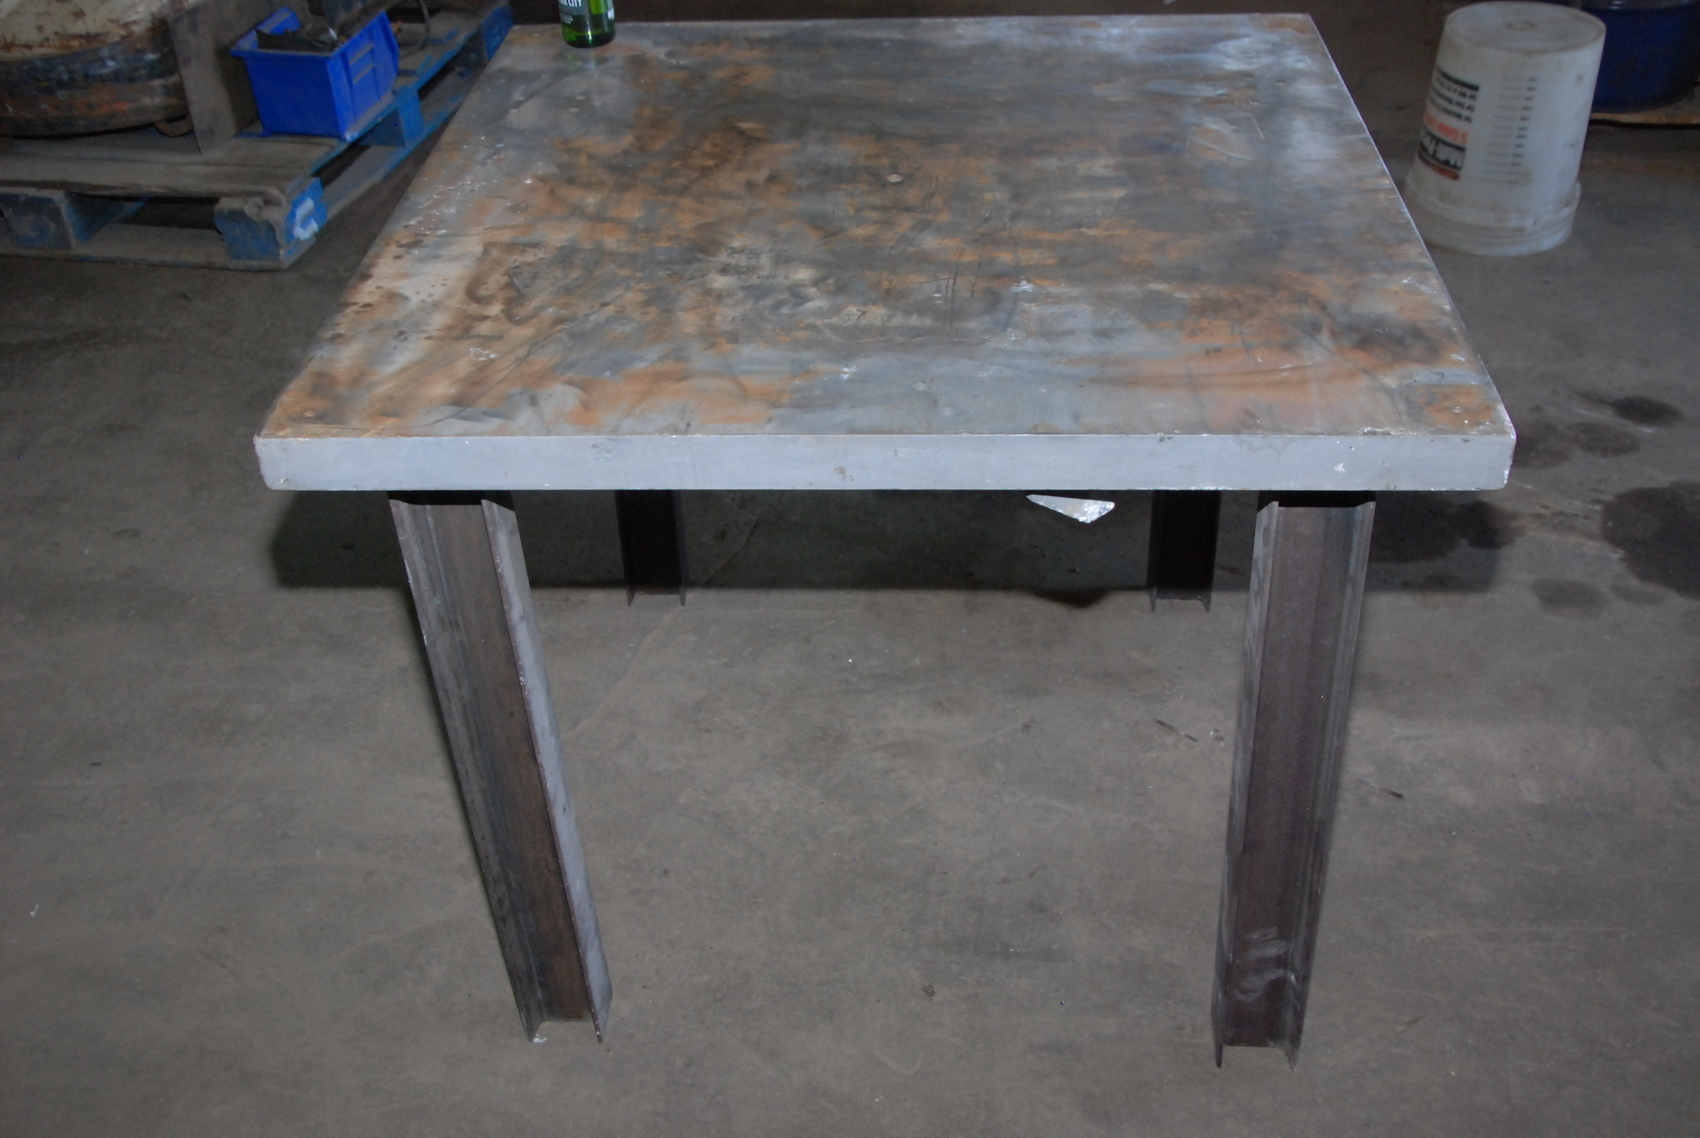 "Heavy duty welding blacksmith table 36x36x30"" 1 3 4""thickness INV"